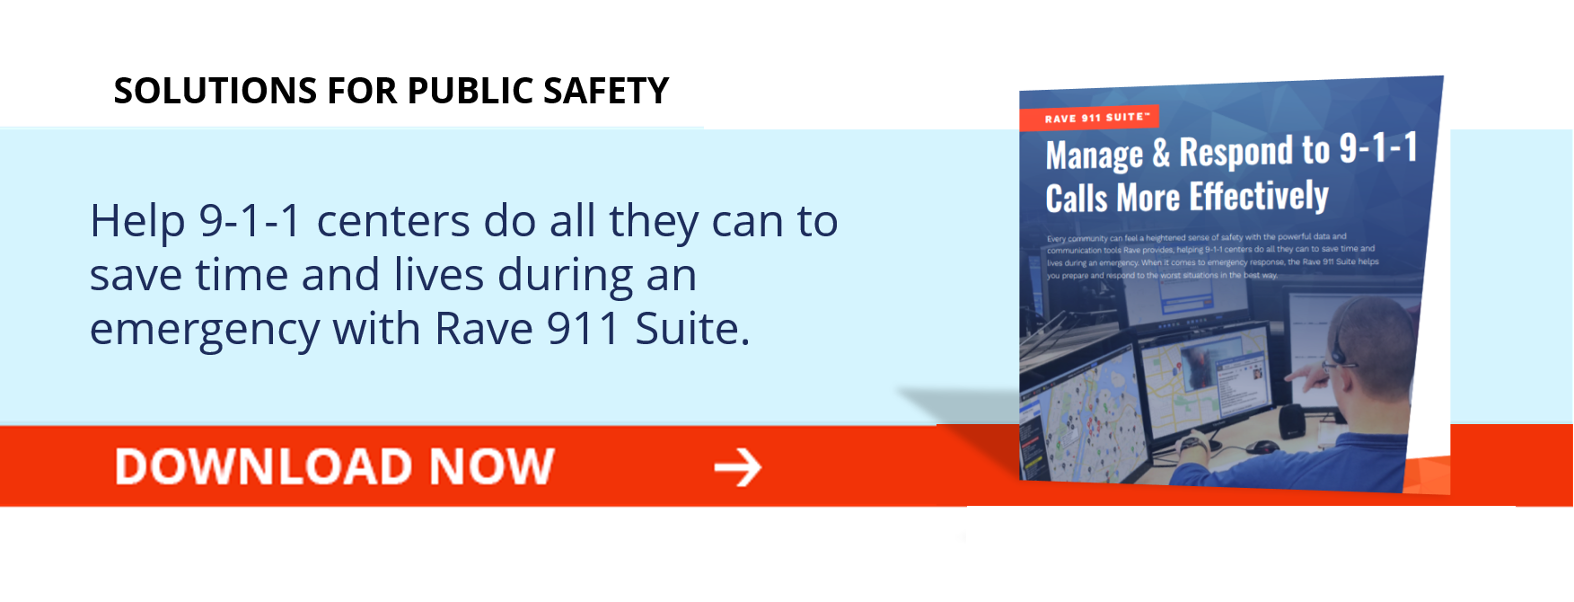 Manage & Respond to 9-1-1 Calls More Effectively